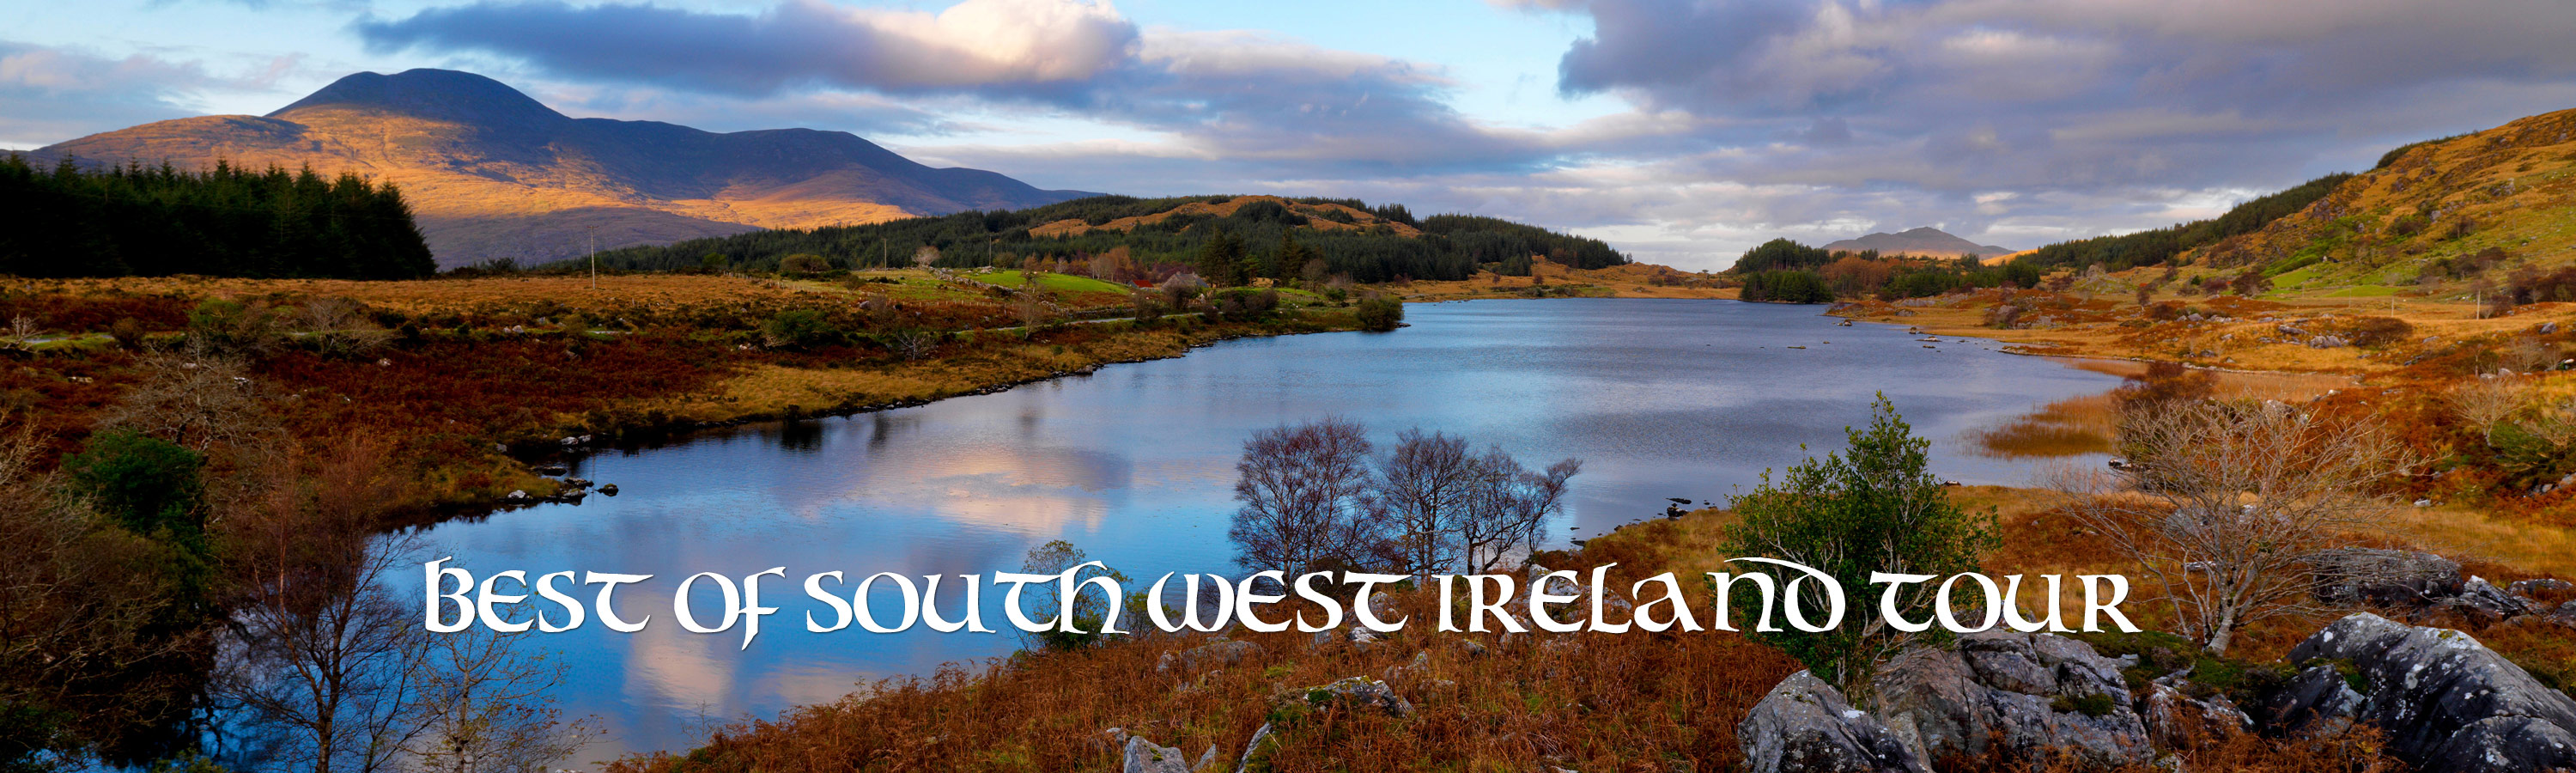 Best of South West Ireland tour